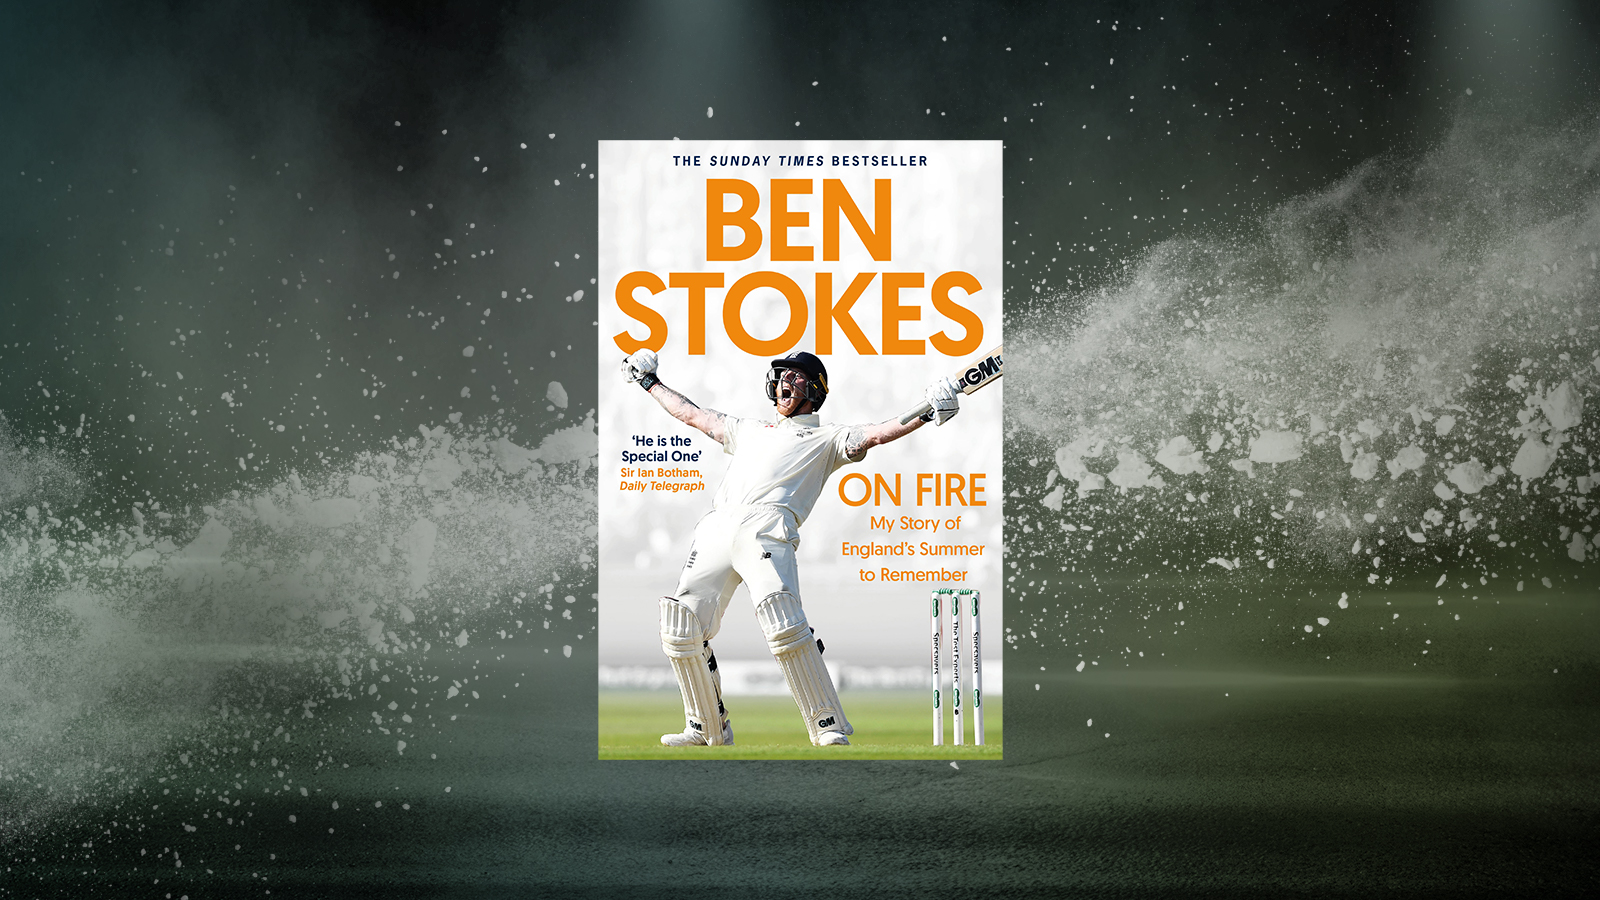 Interview with Richard Gibson, Ghostwriter of Ben Stokes' Autobiography 'On Fire'